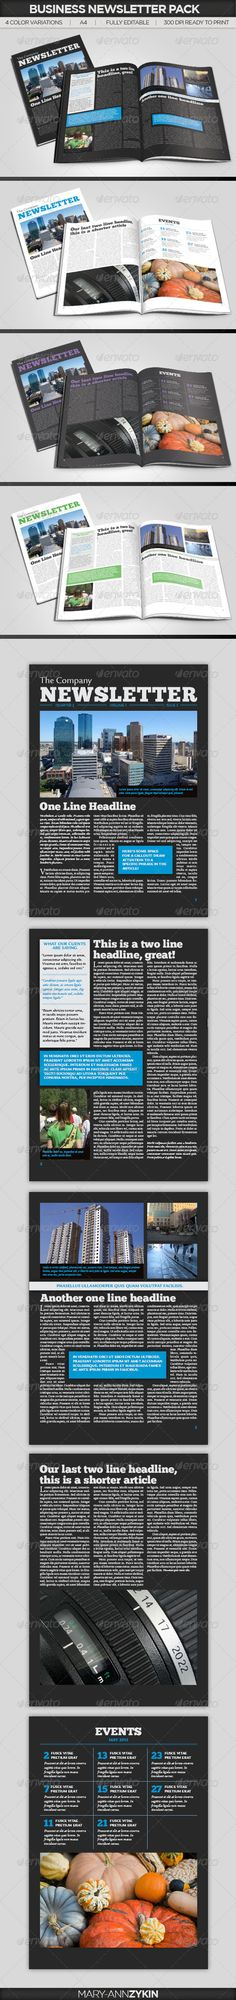 Business Newsletter V01 Newsletter templates, Print templates - free business newsletter templates